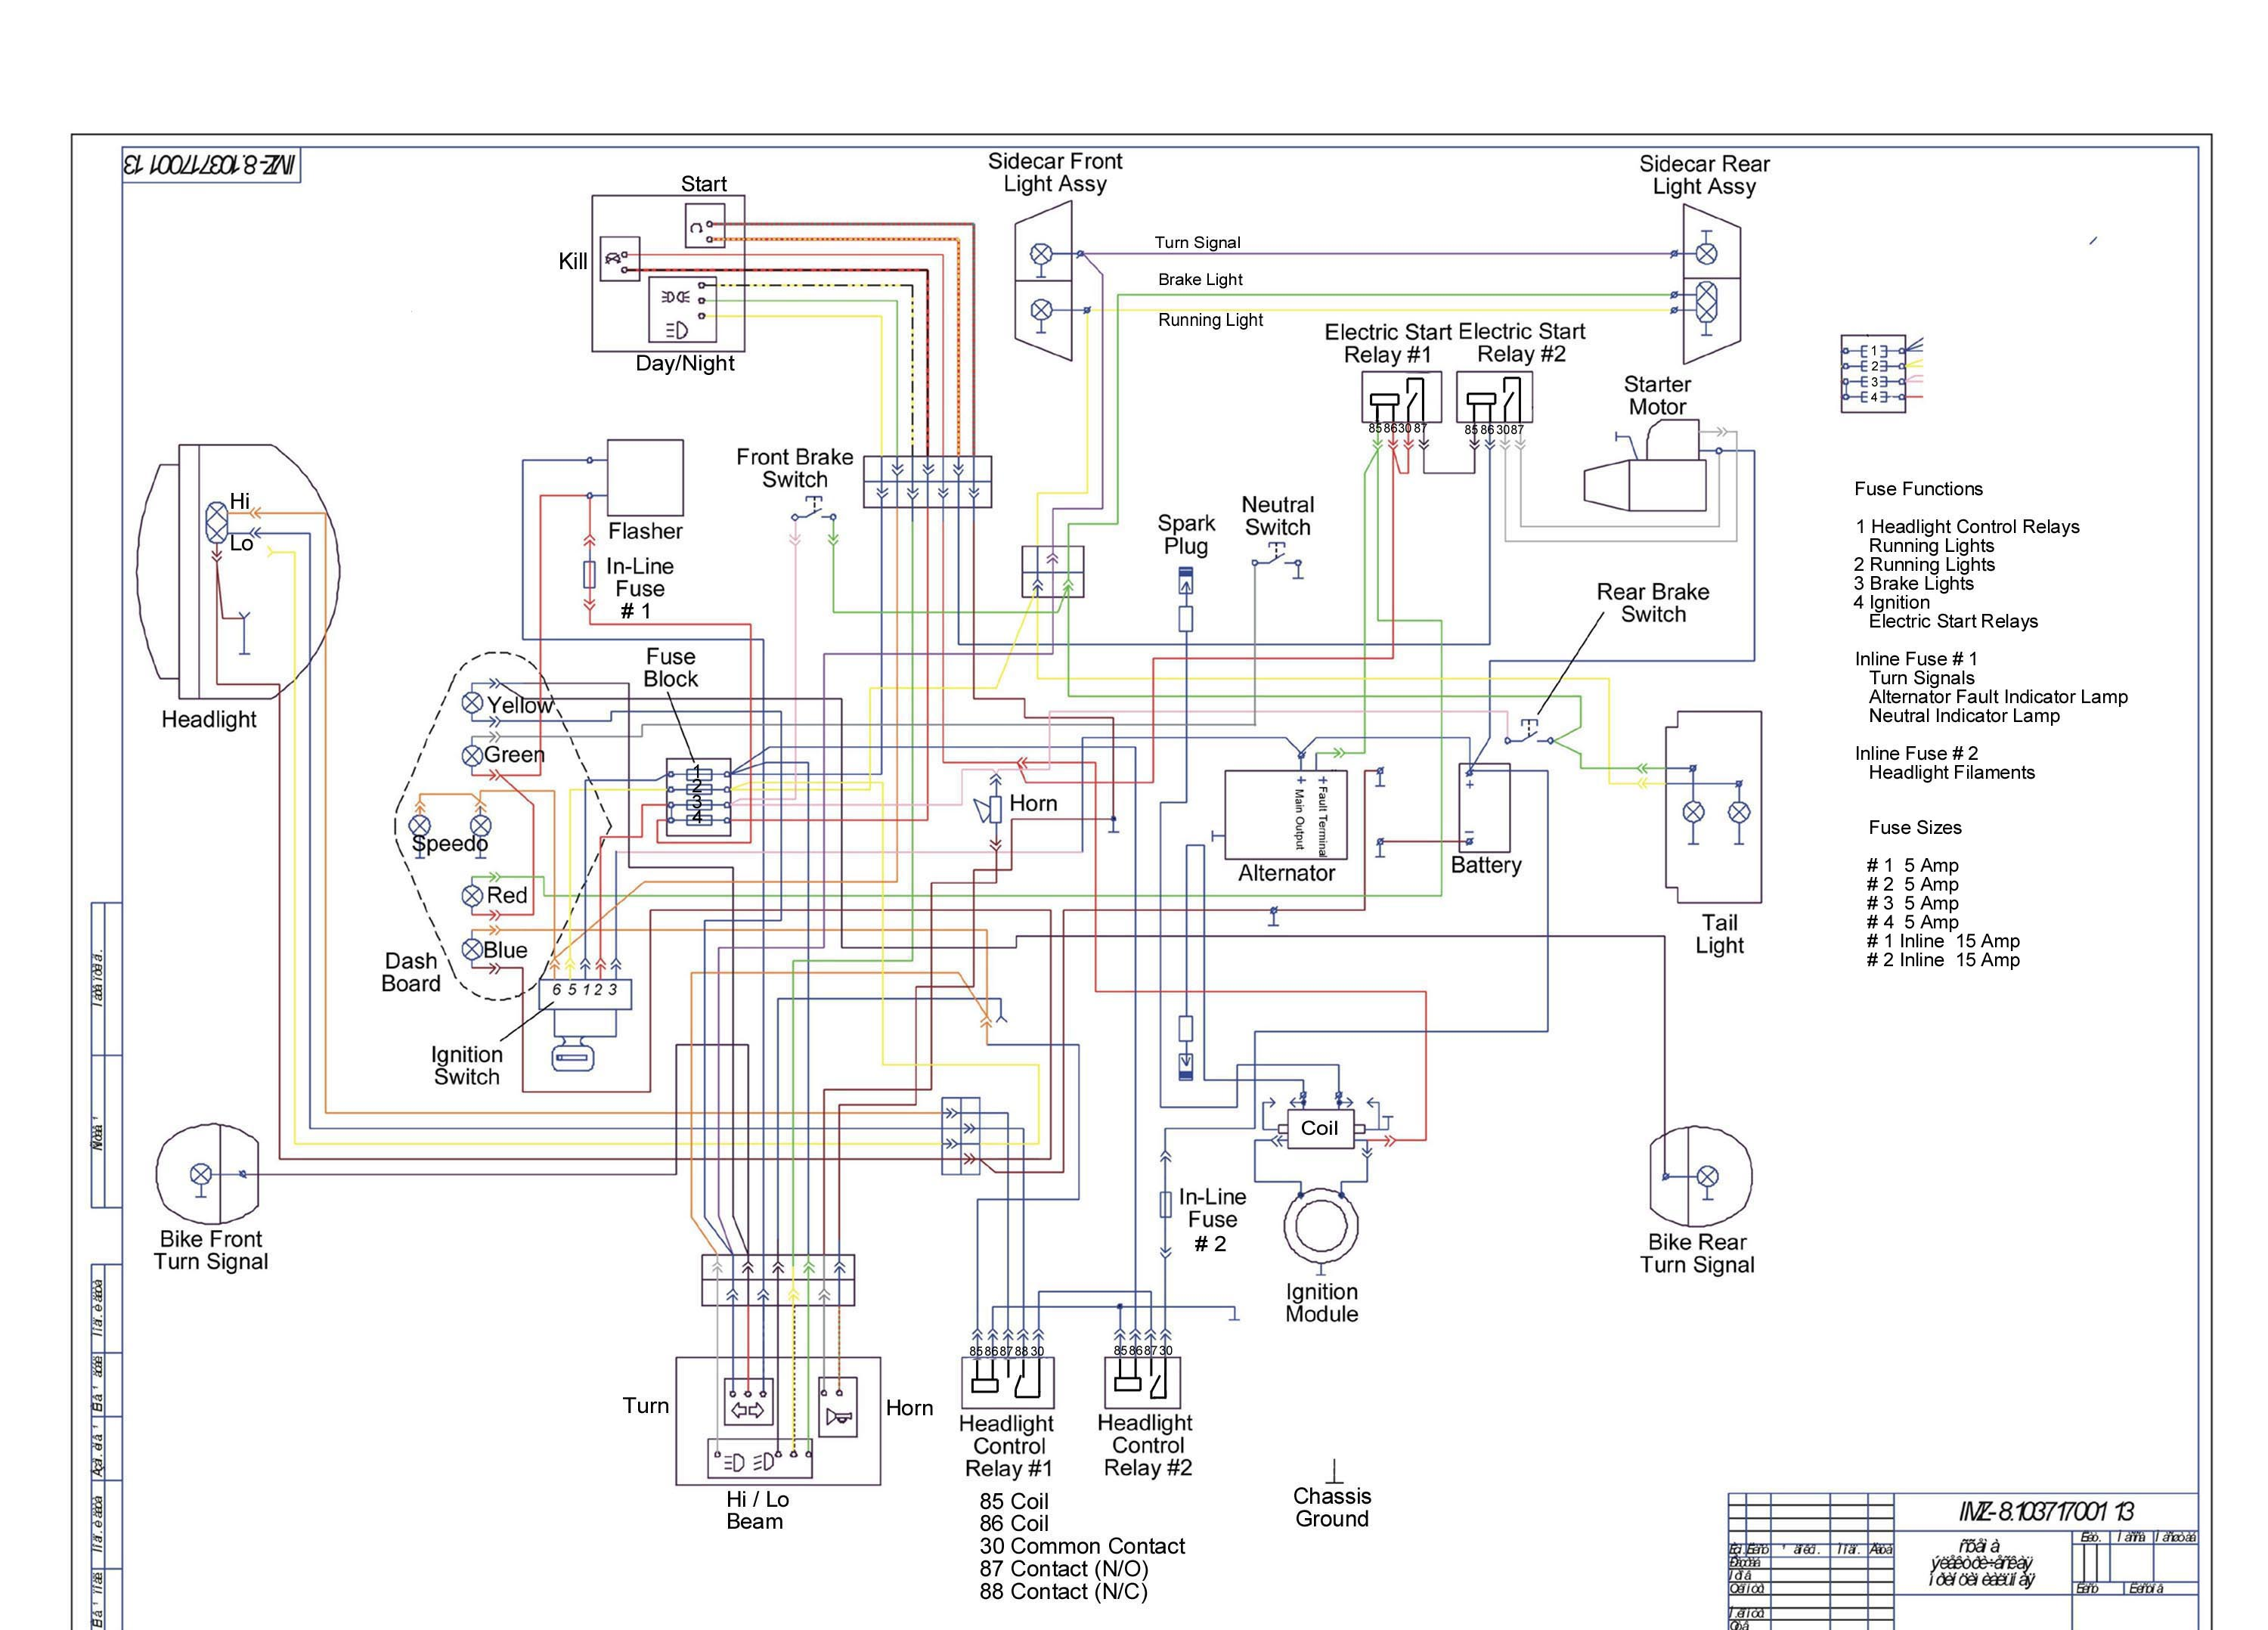 750 Wiring Schematic?resize\\\\\\\\\\\\\\\=665%2C478 celestion wiring diagrams wiring diagram shrutiradio celestion wiring diagrams at gsmx.co